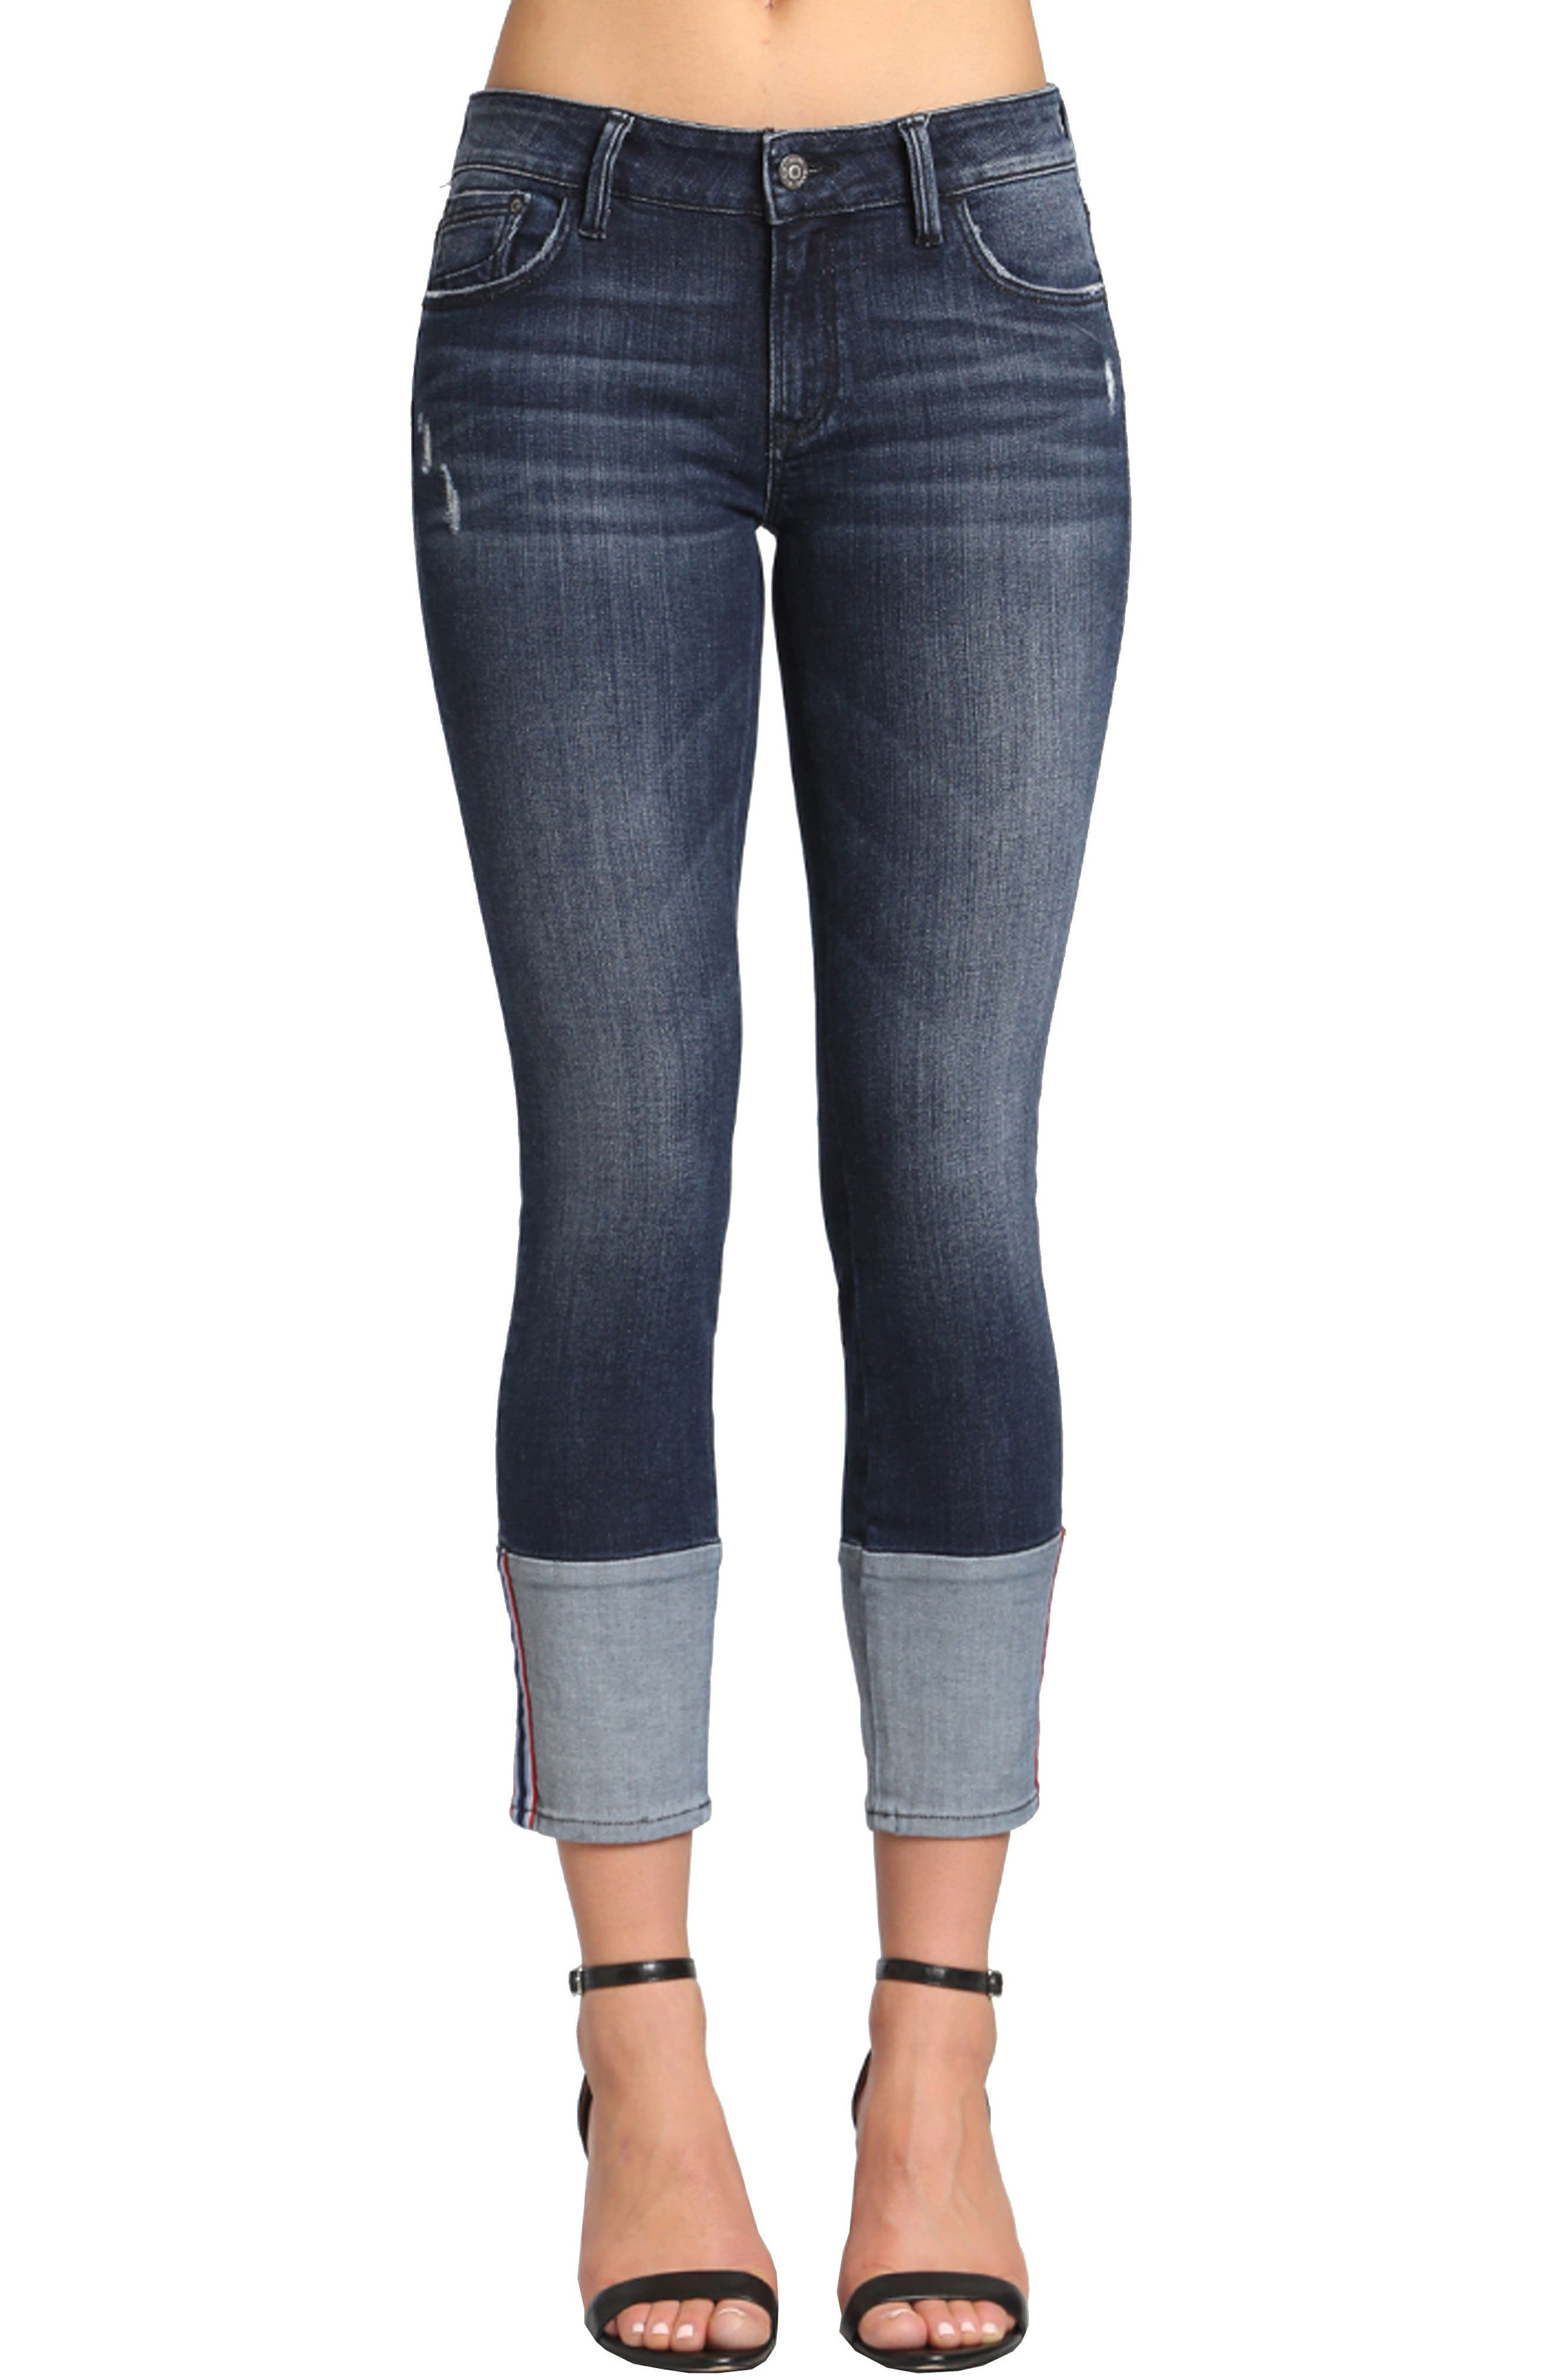 Caisy Cuffed Skinny Crop Jeans,                             Main thumbnail 1, color,                             Dark Vintage